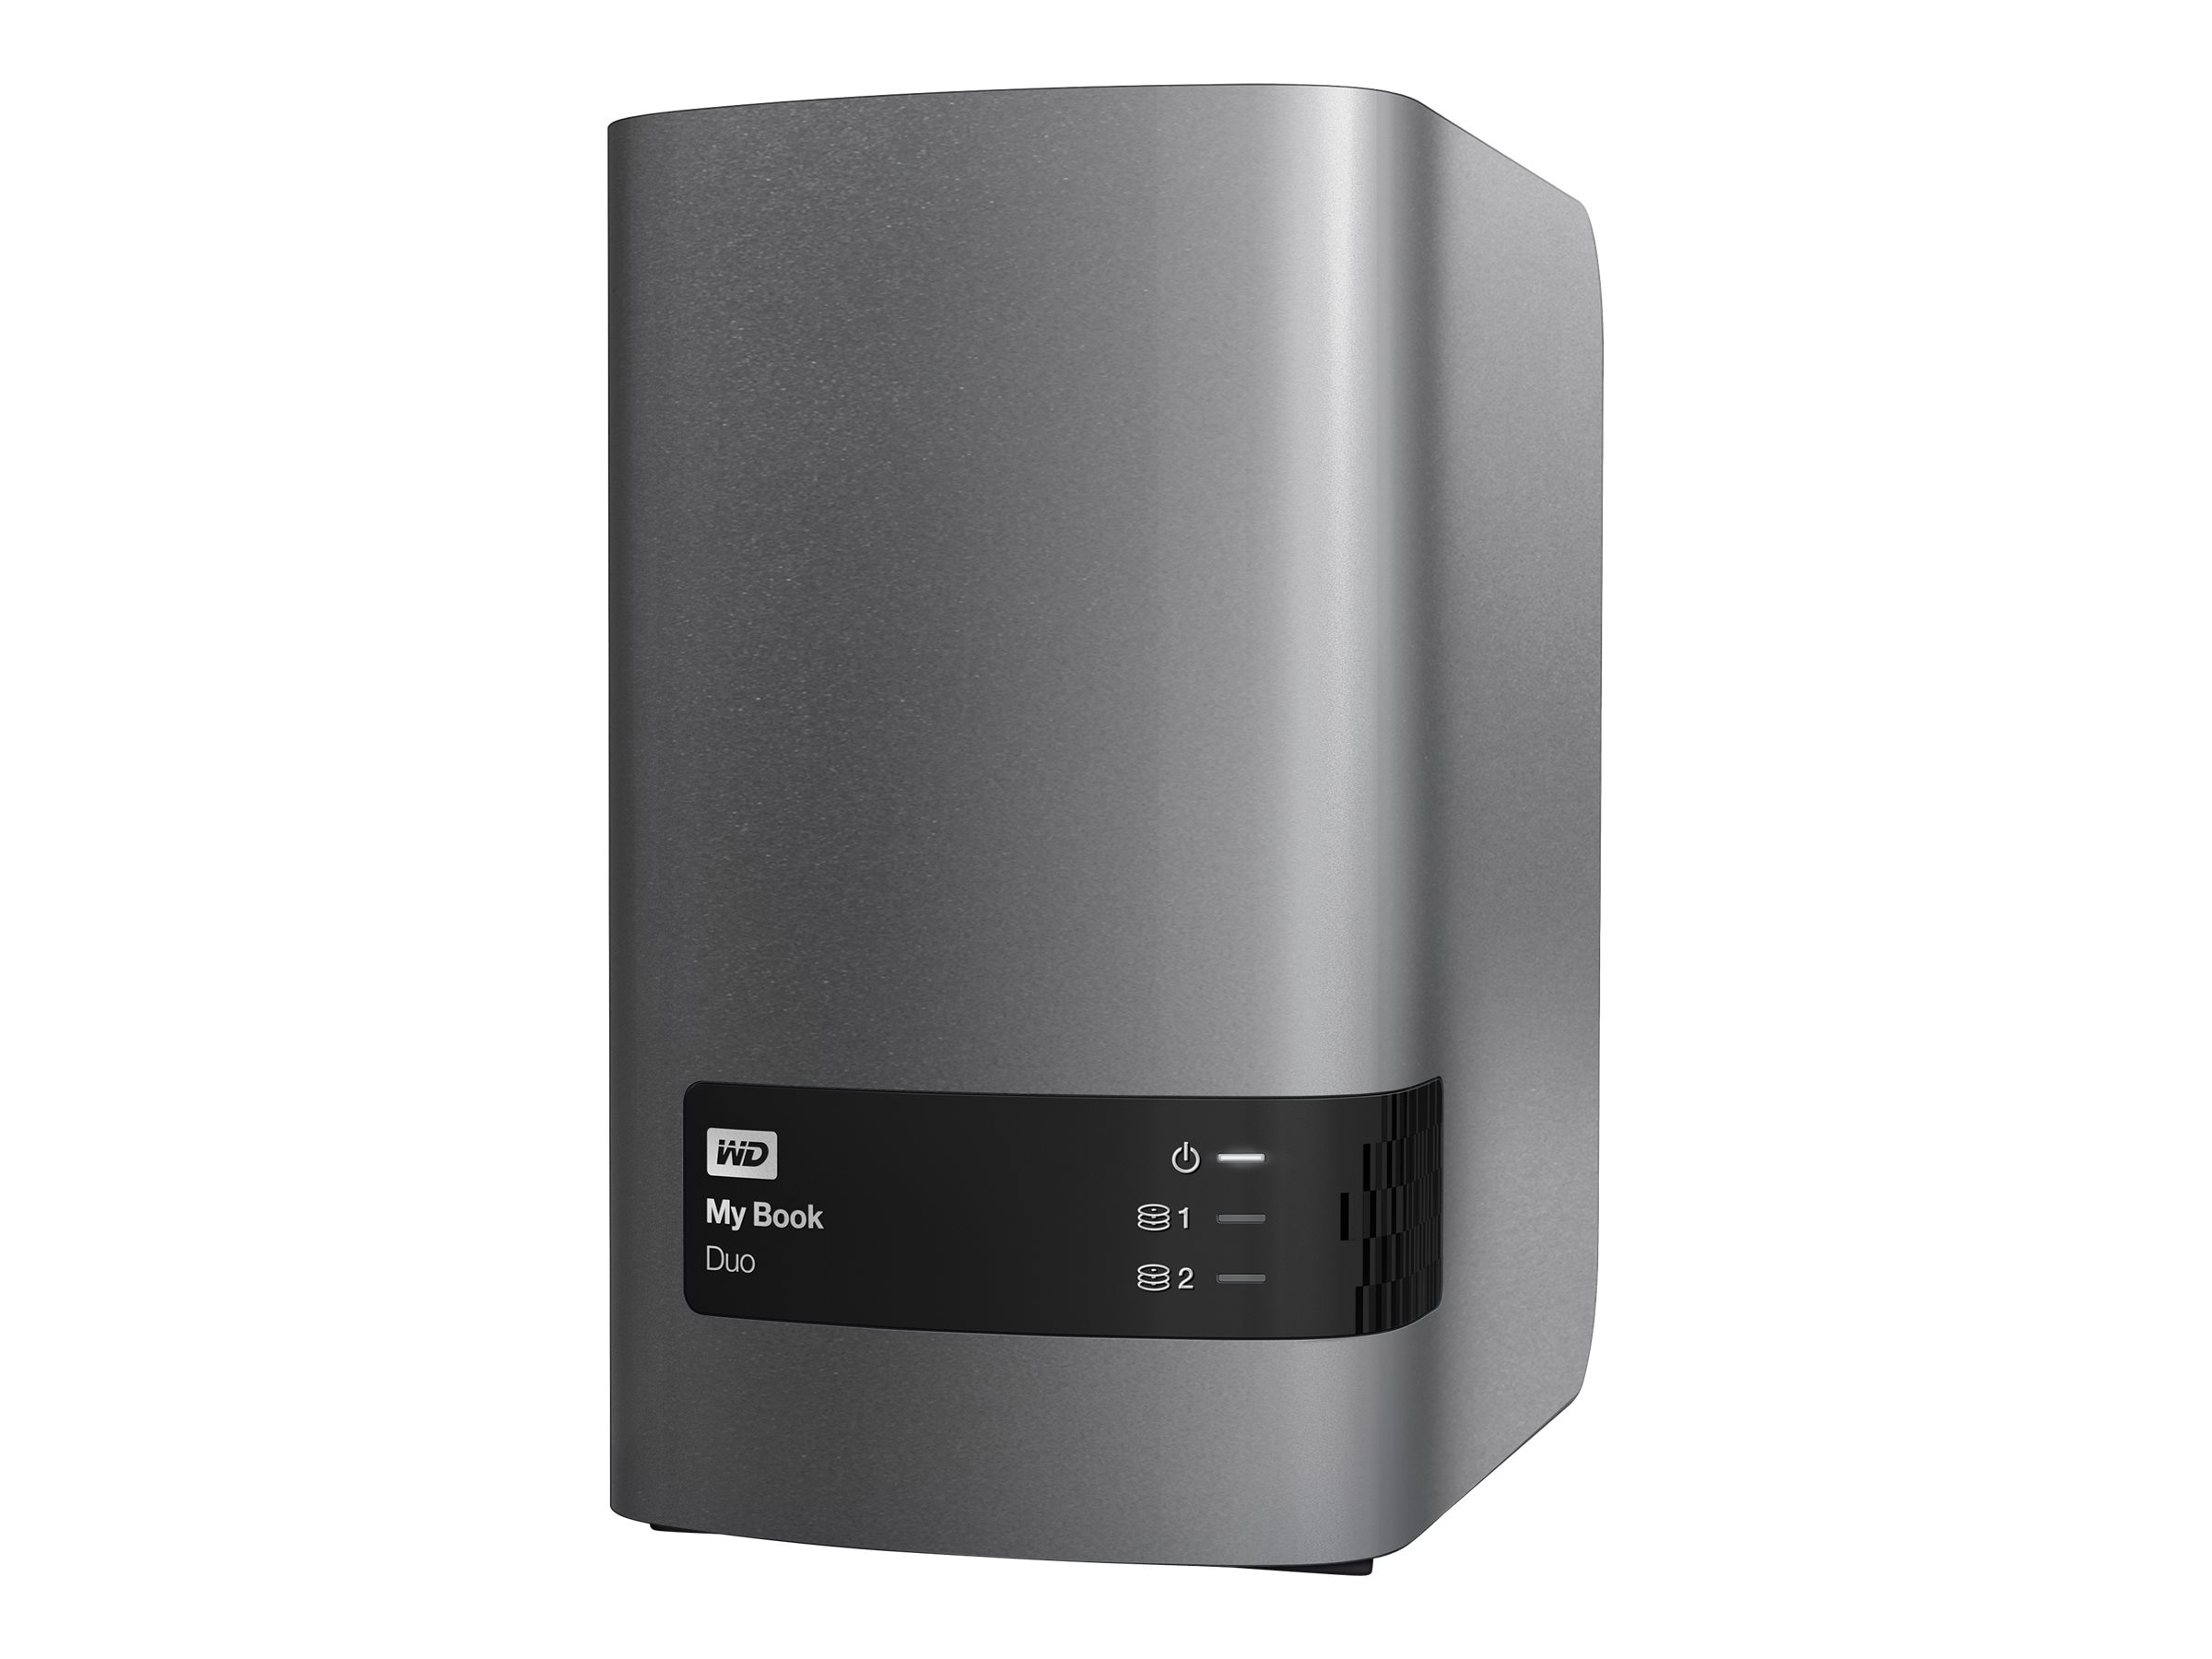 WD 8TB My Book Duo RAID Storage, WDBLWE0080JCH-NESN